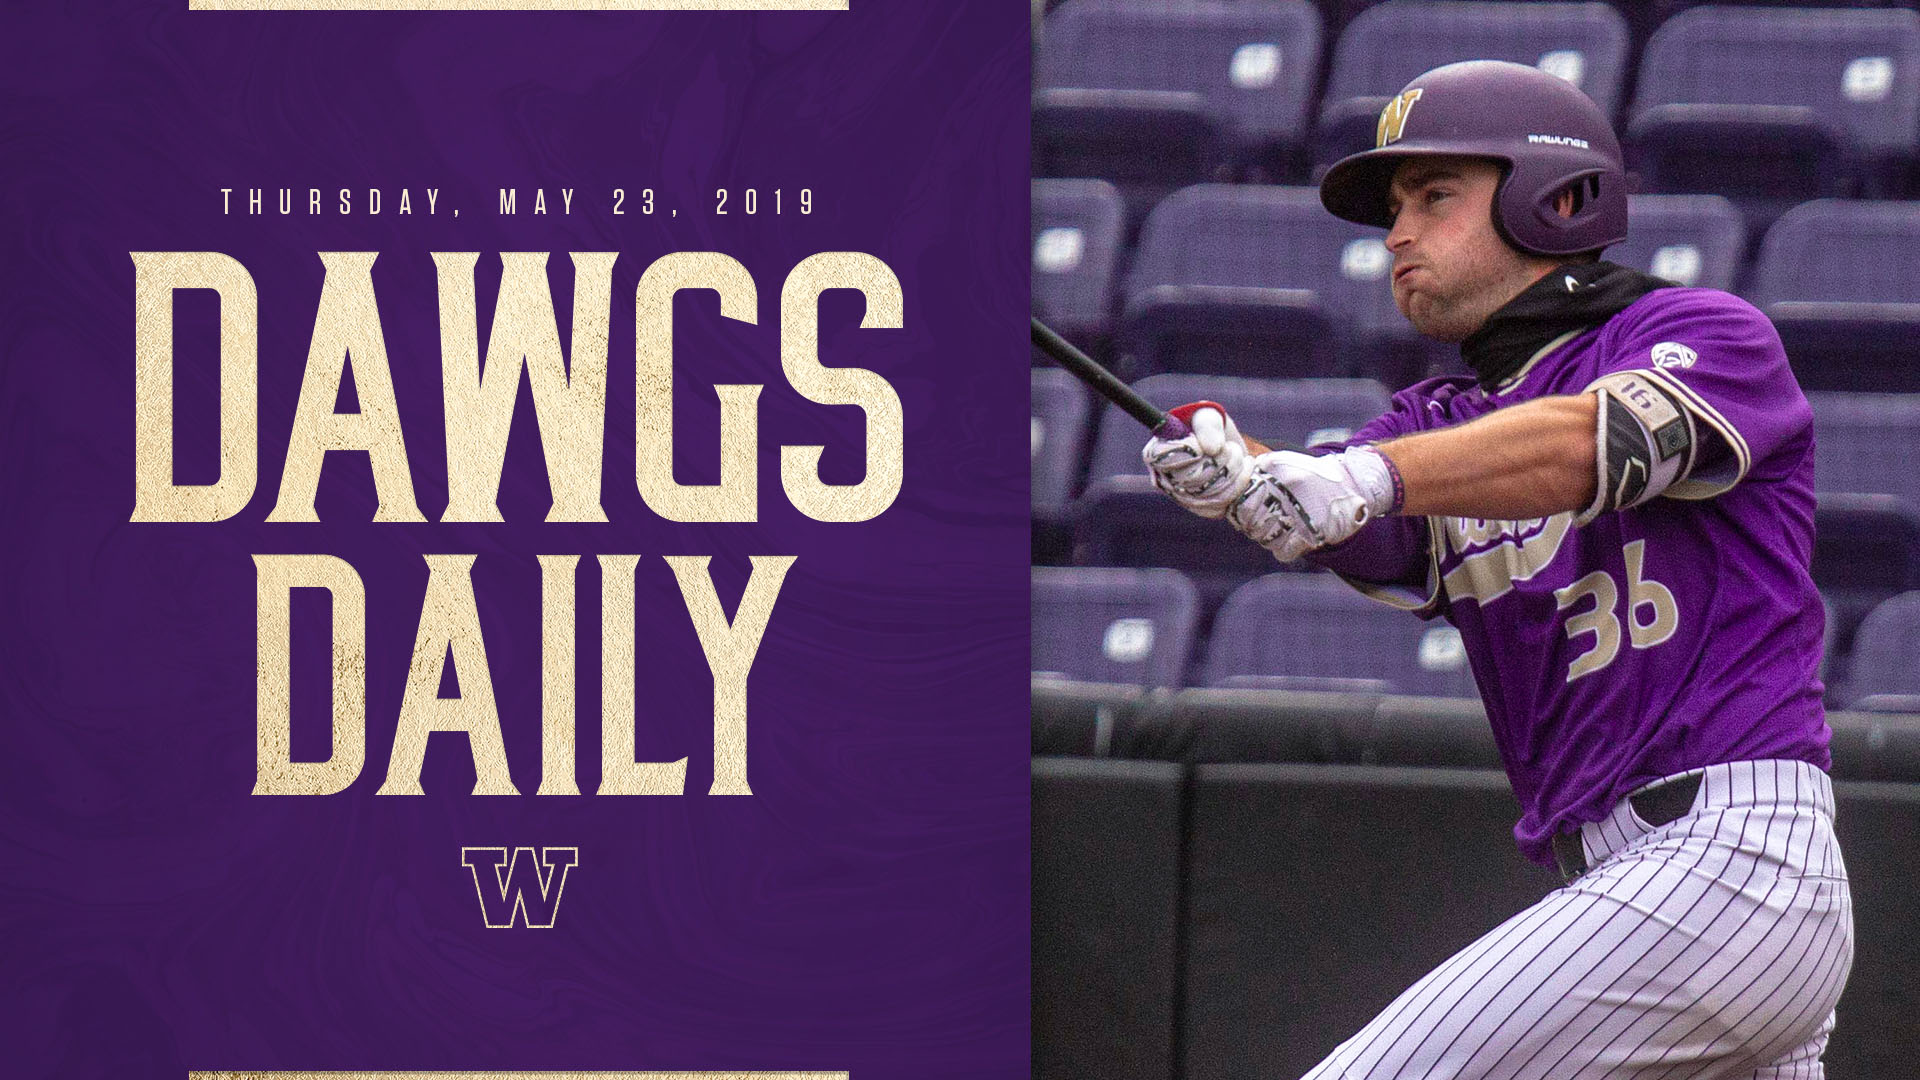 Dawgs Daily: Thursday, May 23